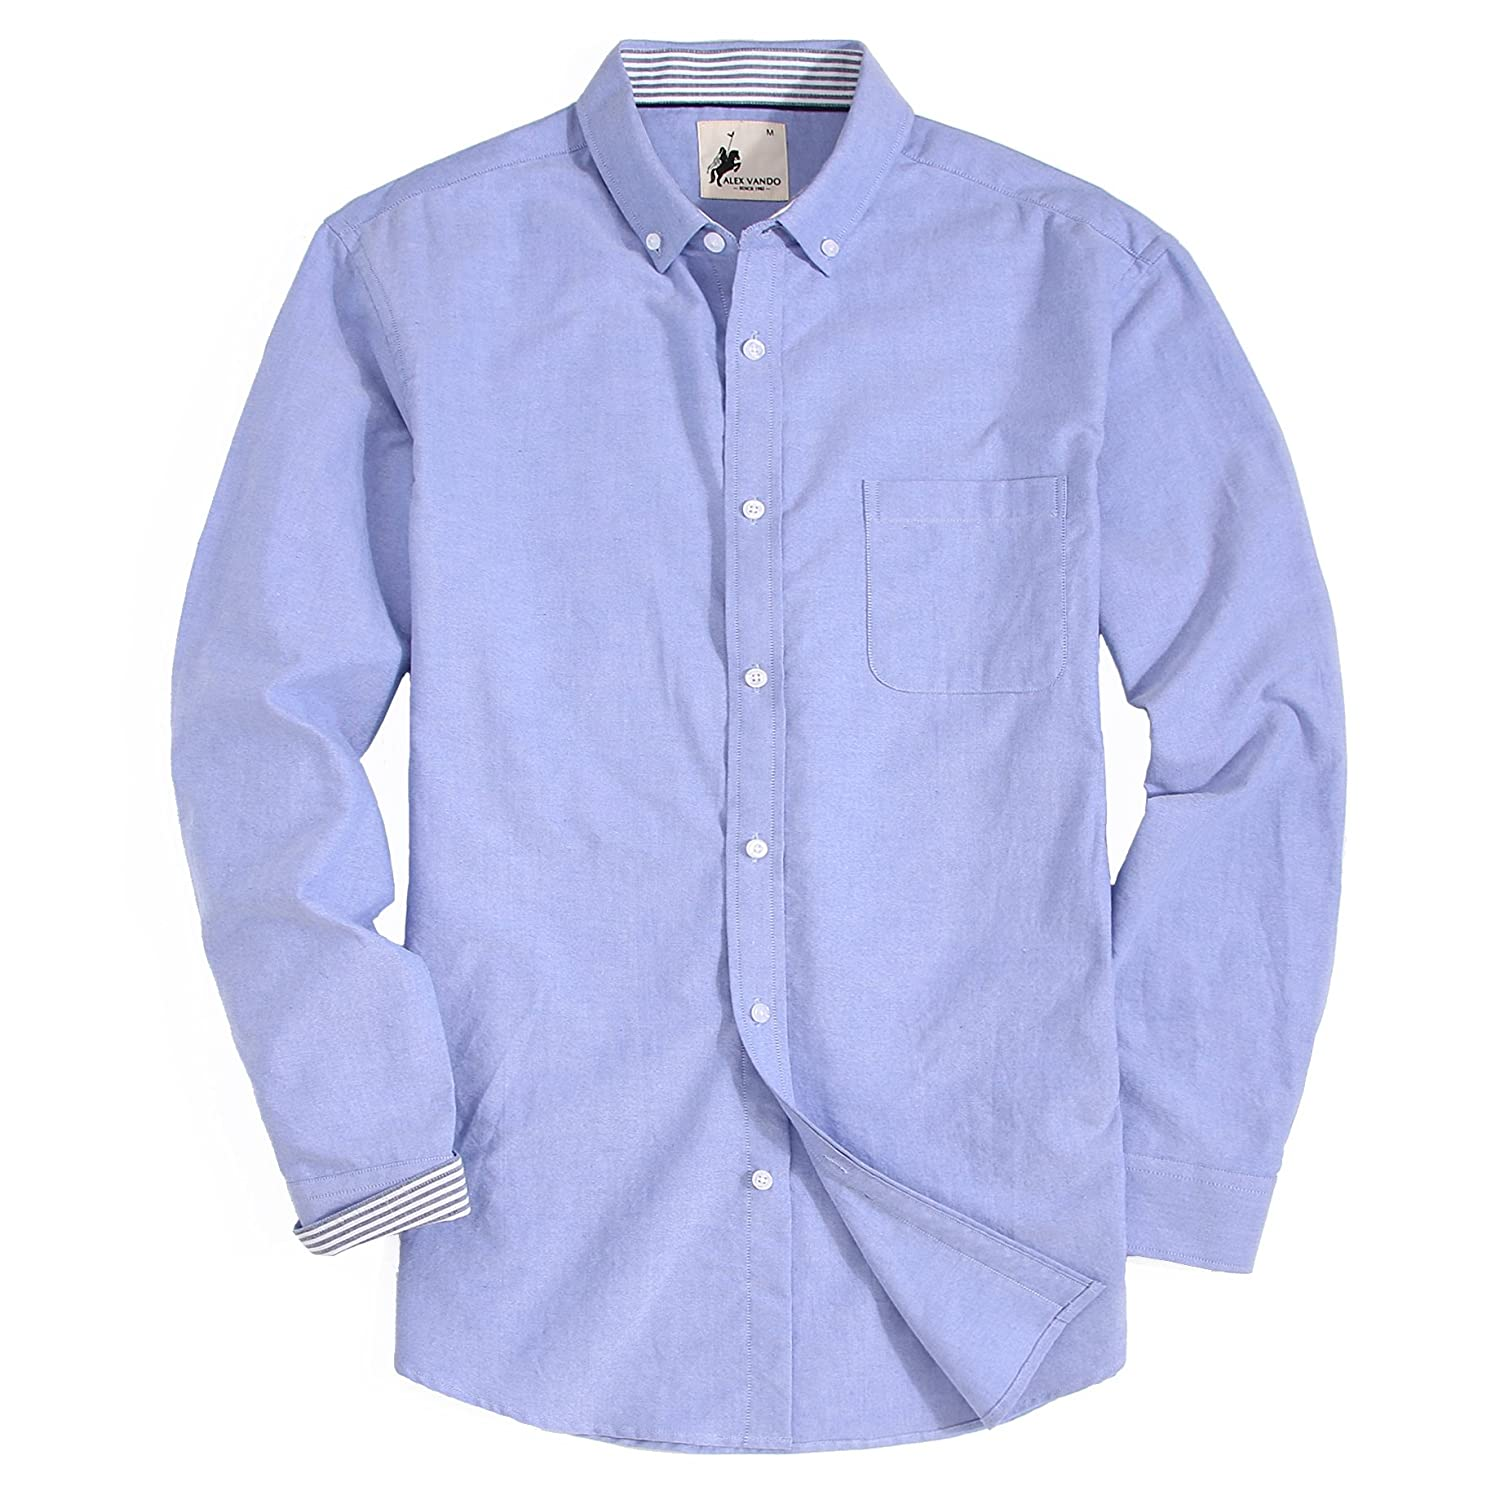 e0e3ea7525b Material 100% high-grade combed cotton pinpoint oxford and 100%Fine cotton  50s plaid